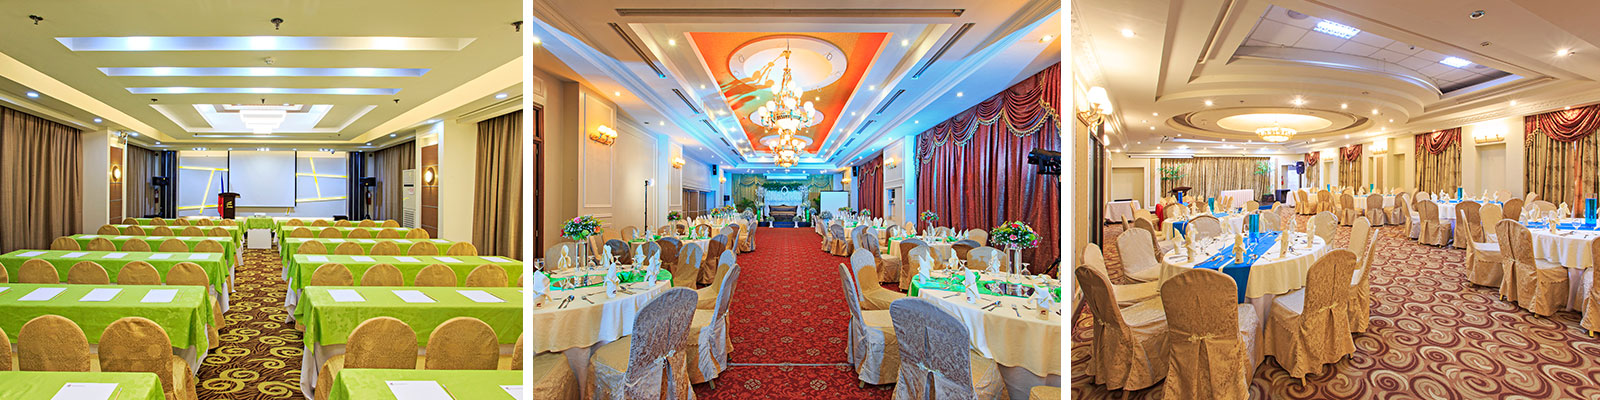 function room cebu